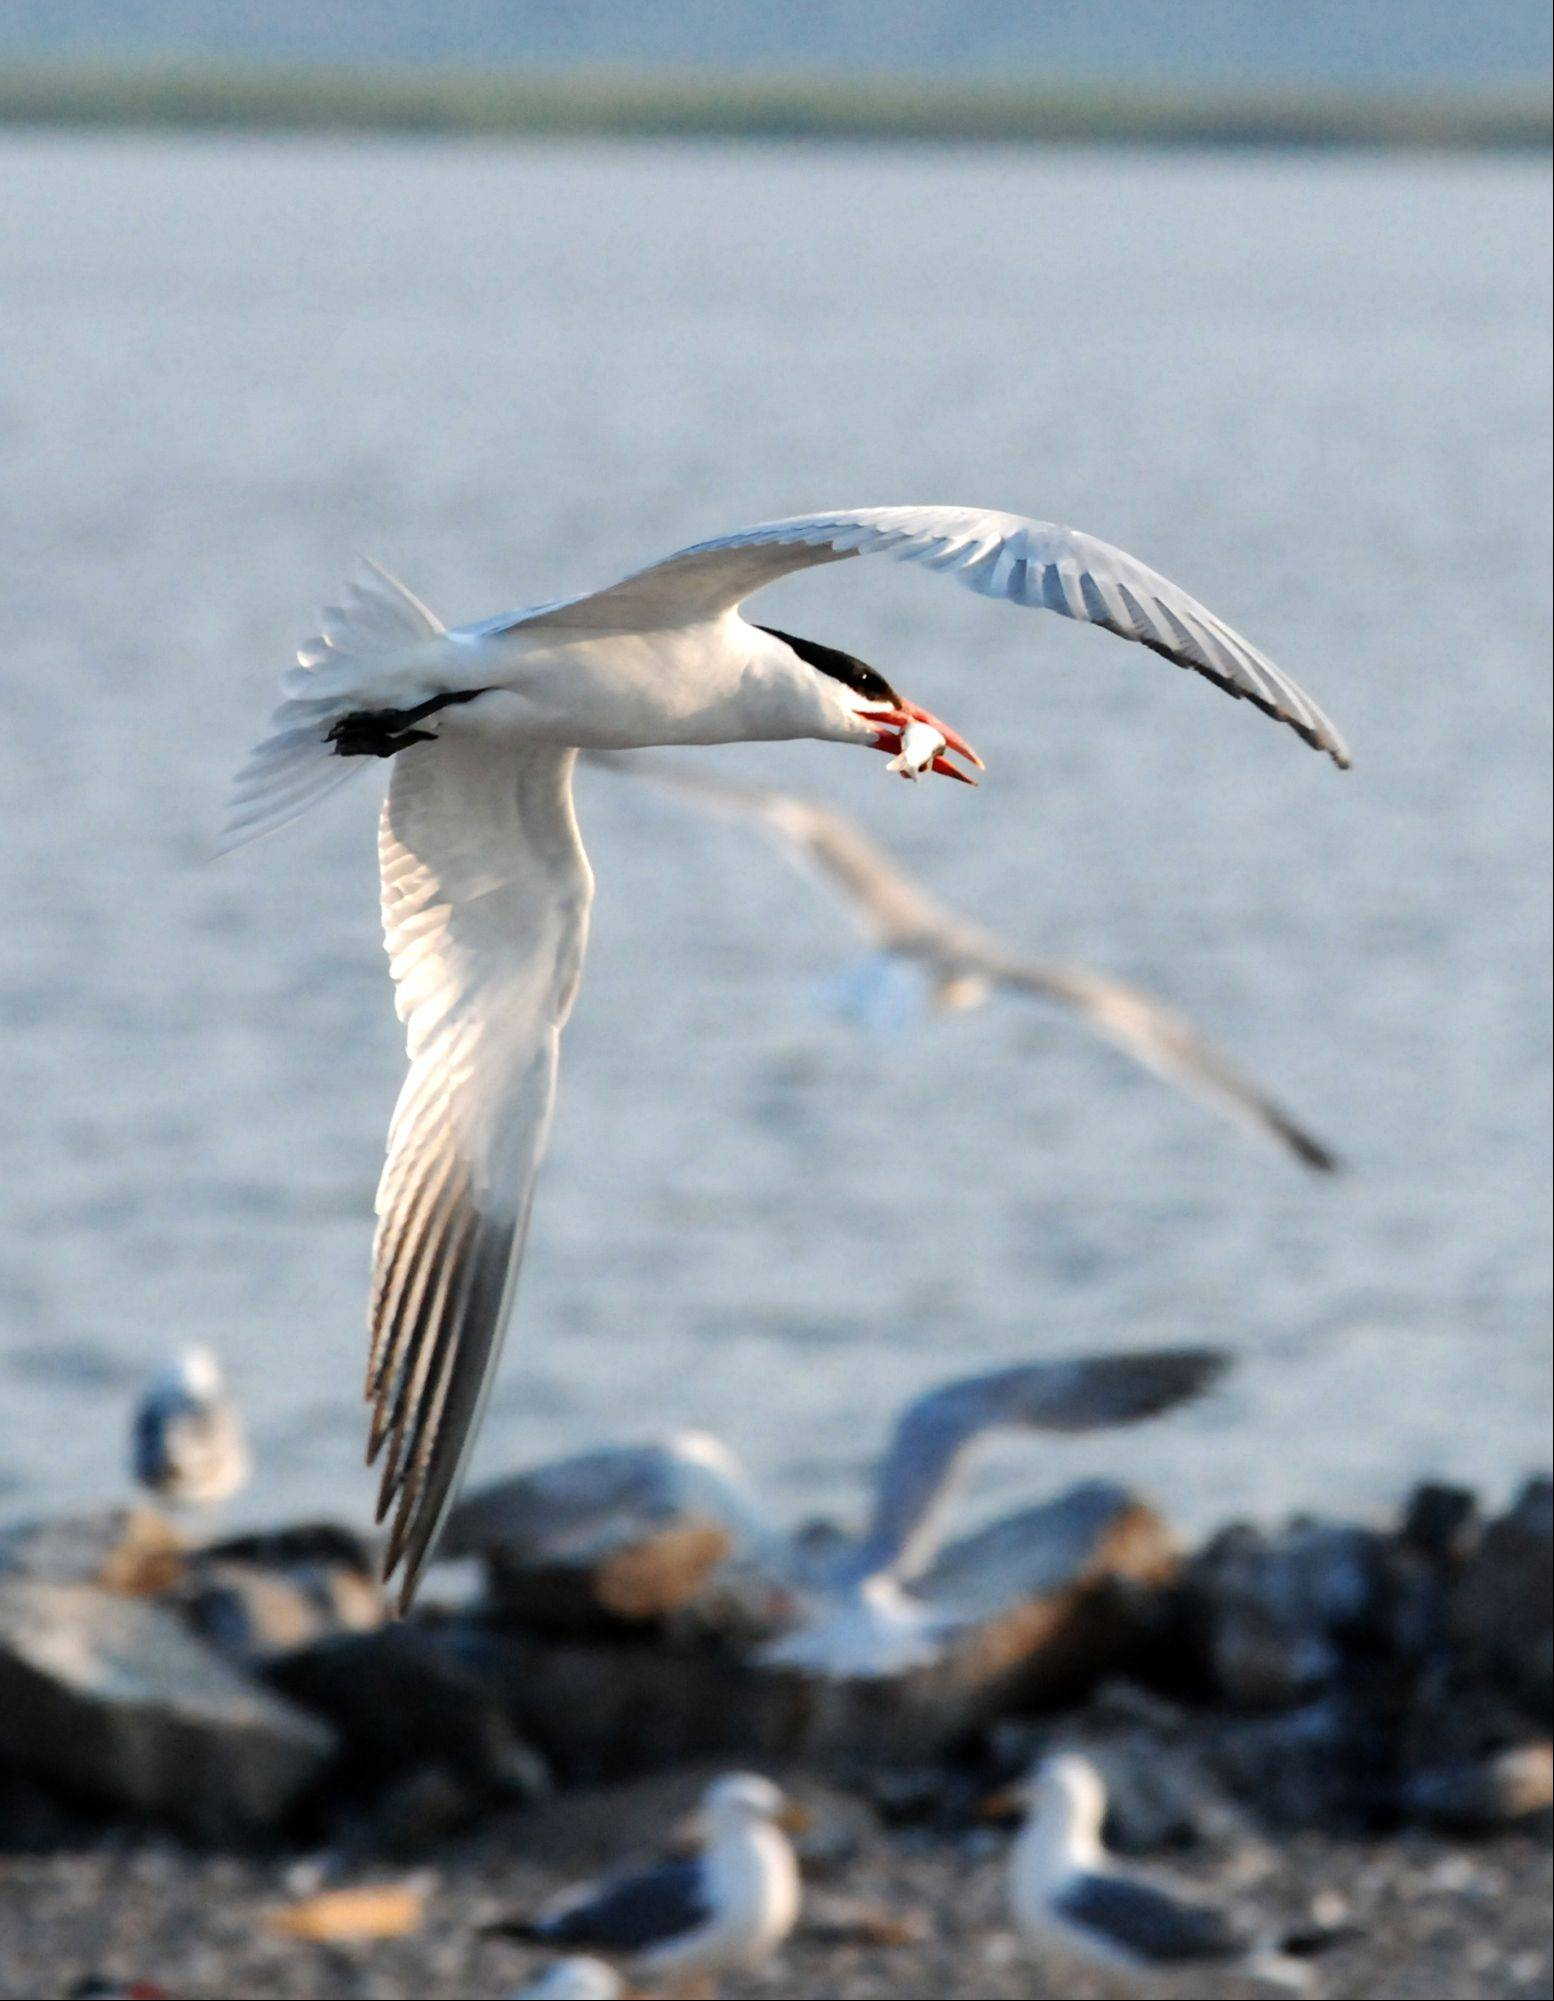 A Caspian tern flies over Crump Lake Island near Adel, Ore., on July 22, 2008.